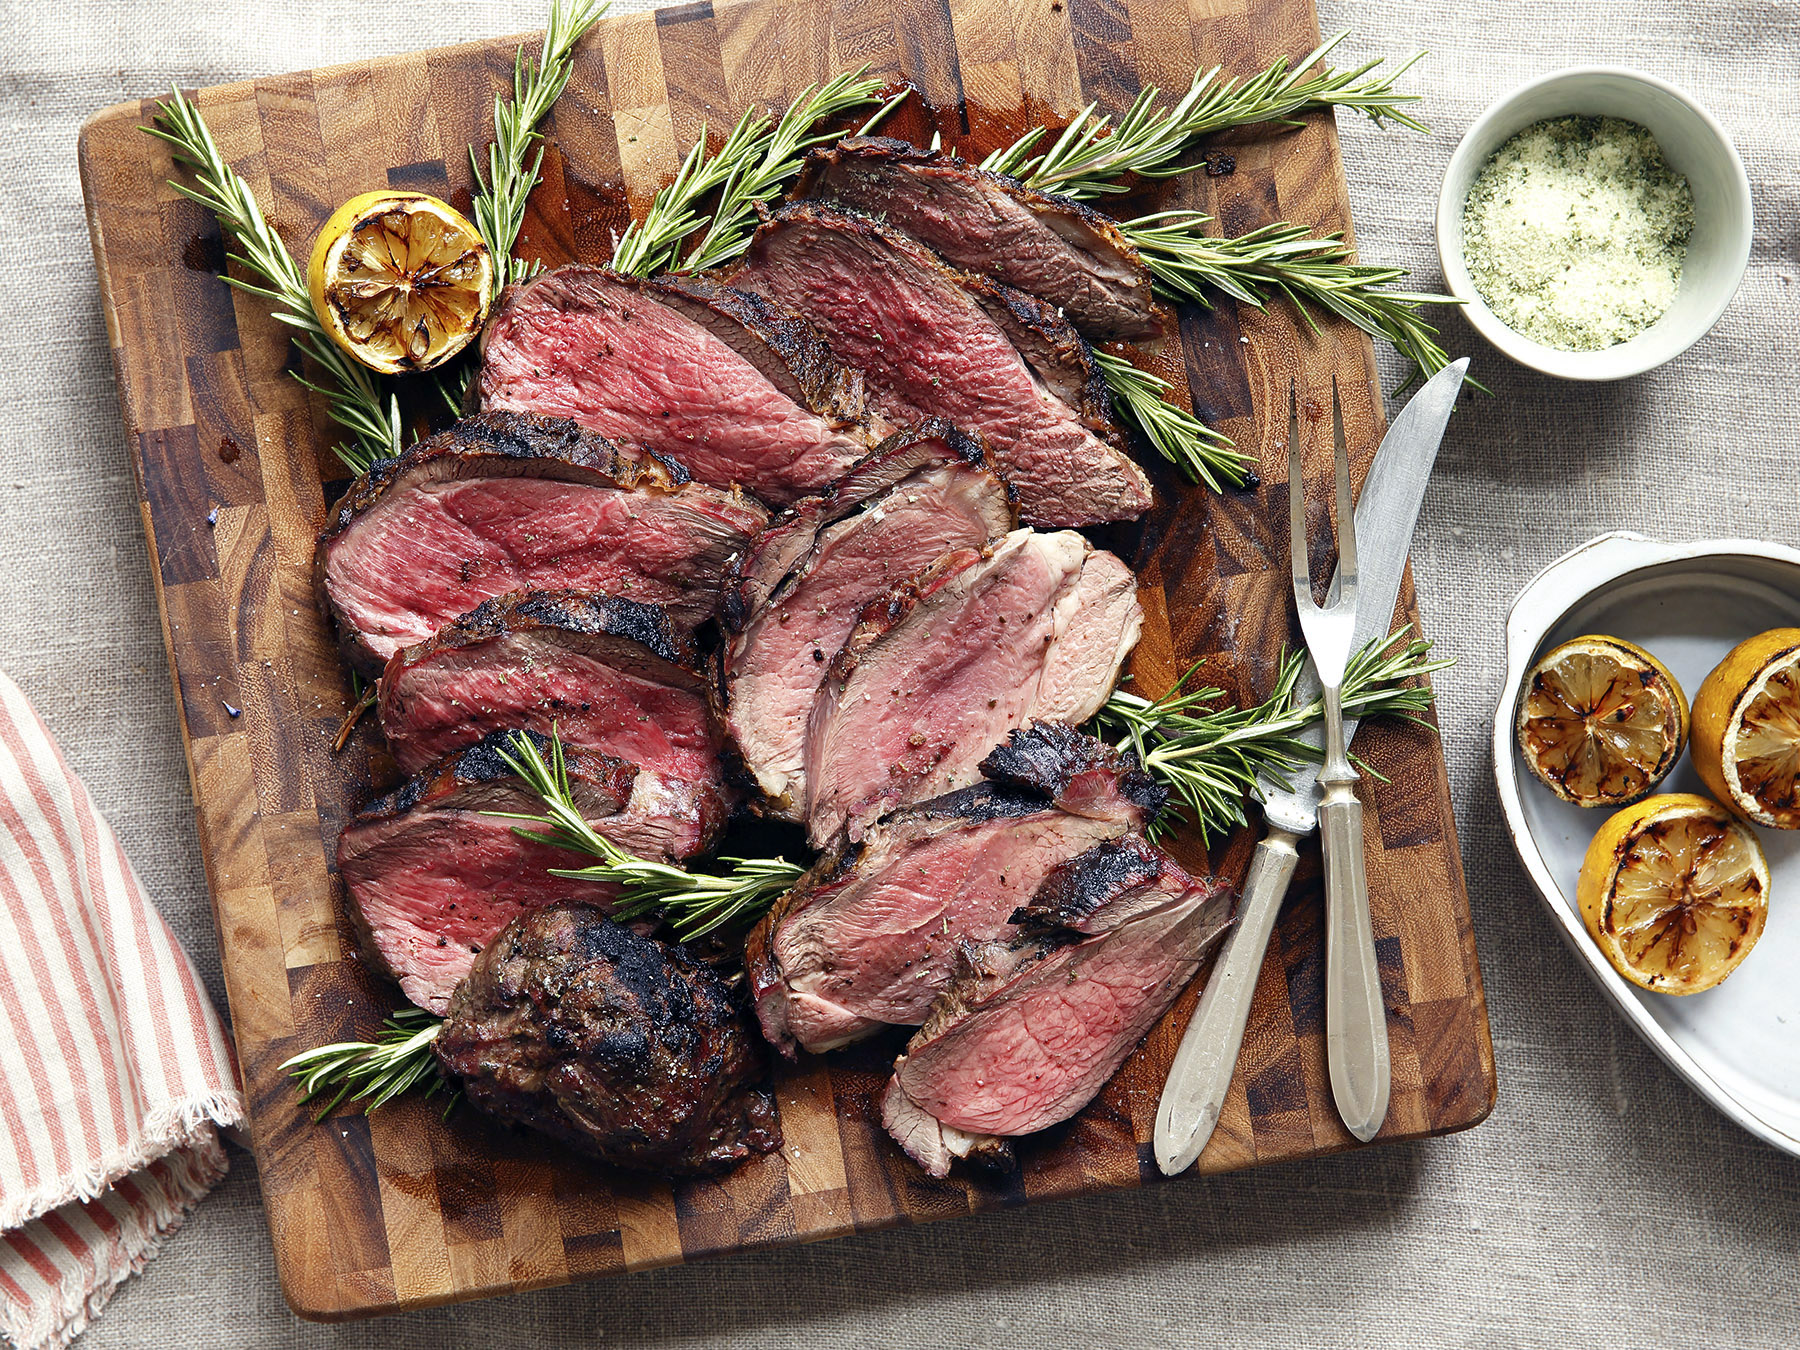 Ready in under an hour, this Butterflied Leg of Lamb is generously seasoned with a homemade rosemary sea salt and served with a charred lemon for squeezing.